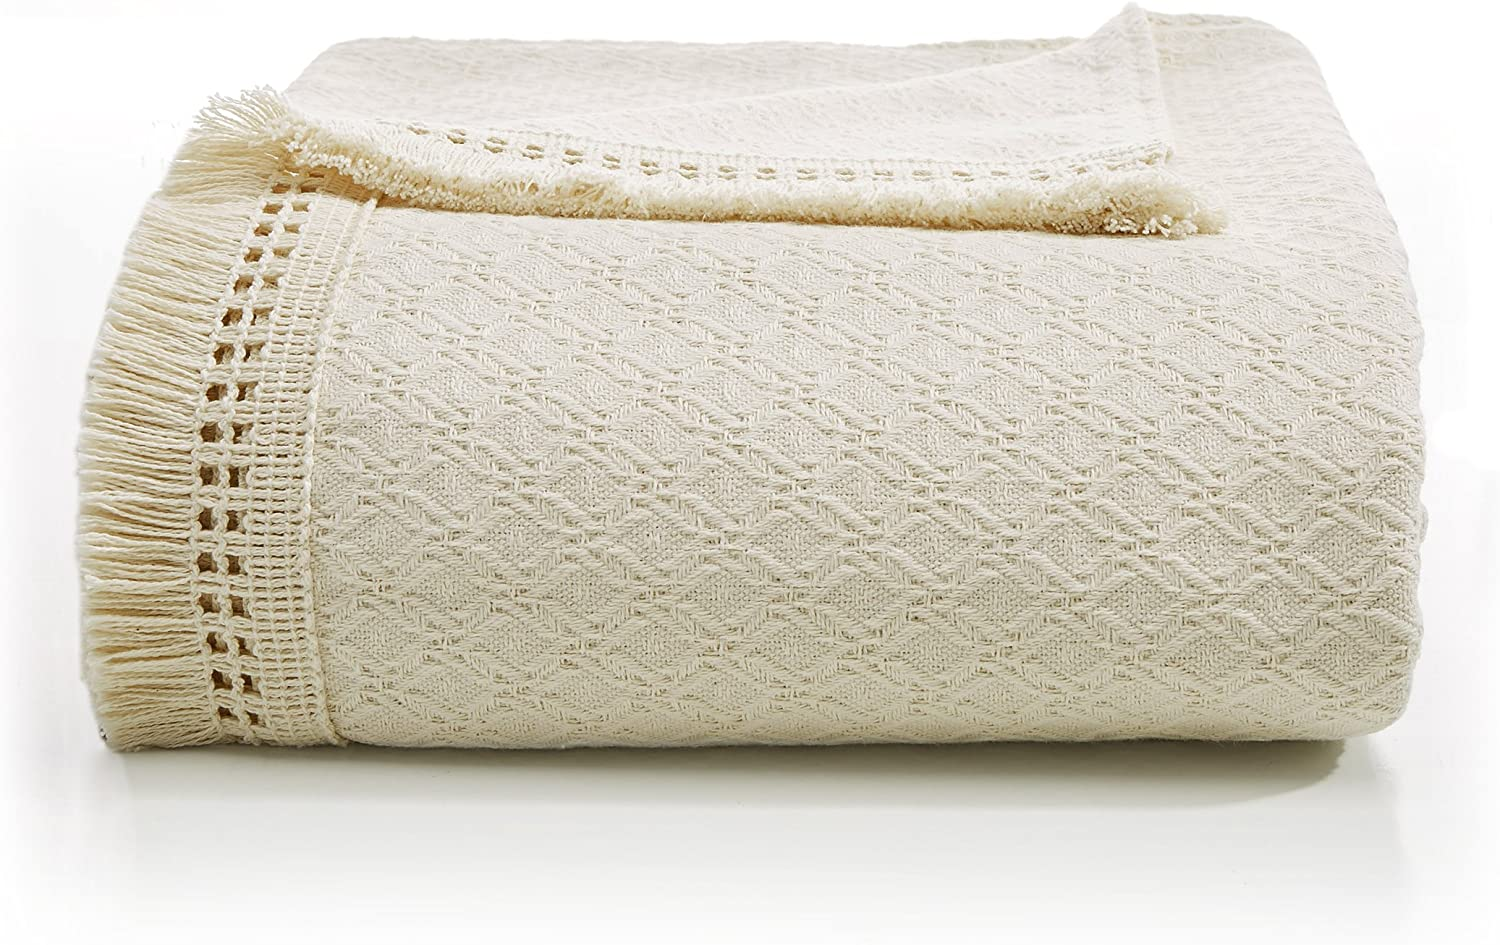 LaMont Home Woven Jacquard Collection Cotton Blend Bedspread